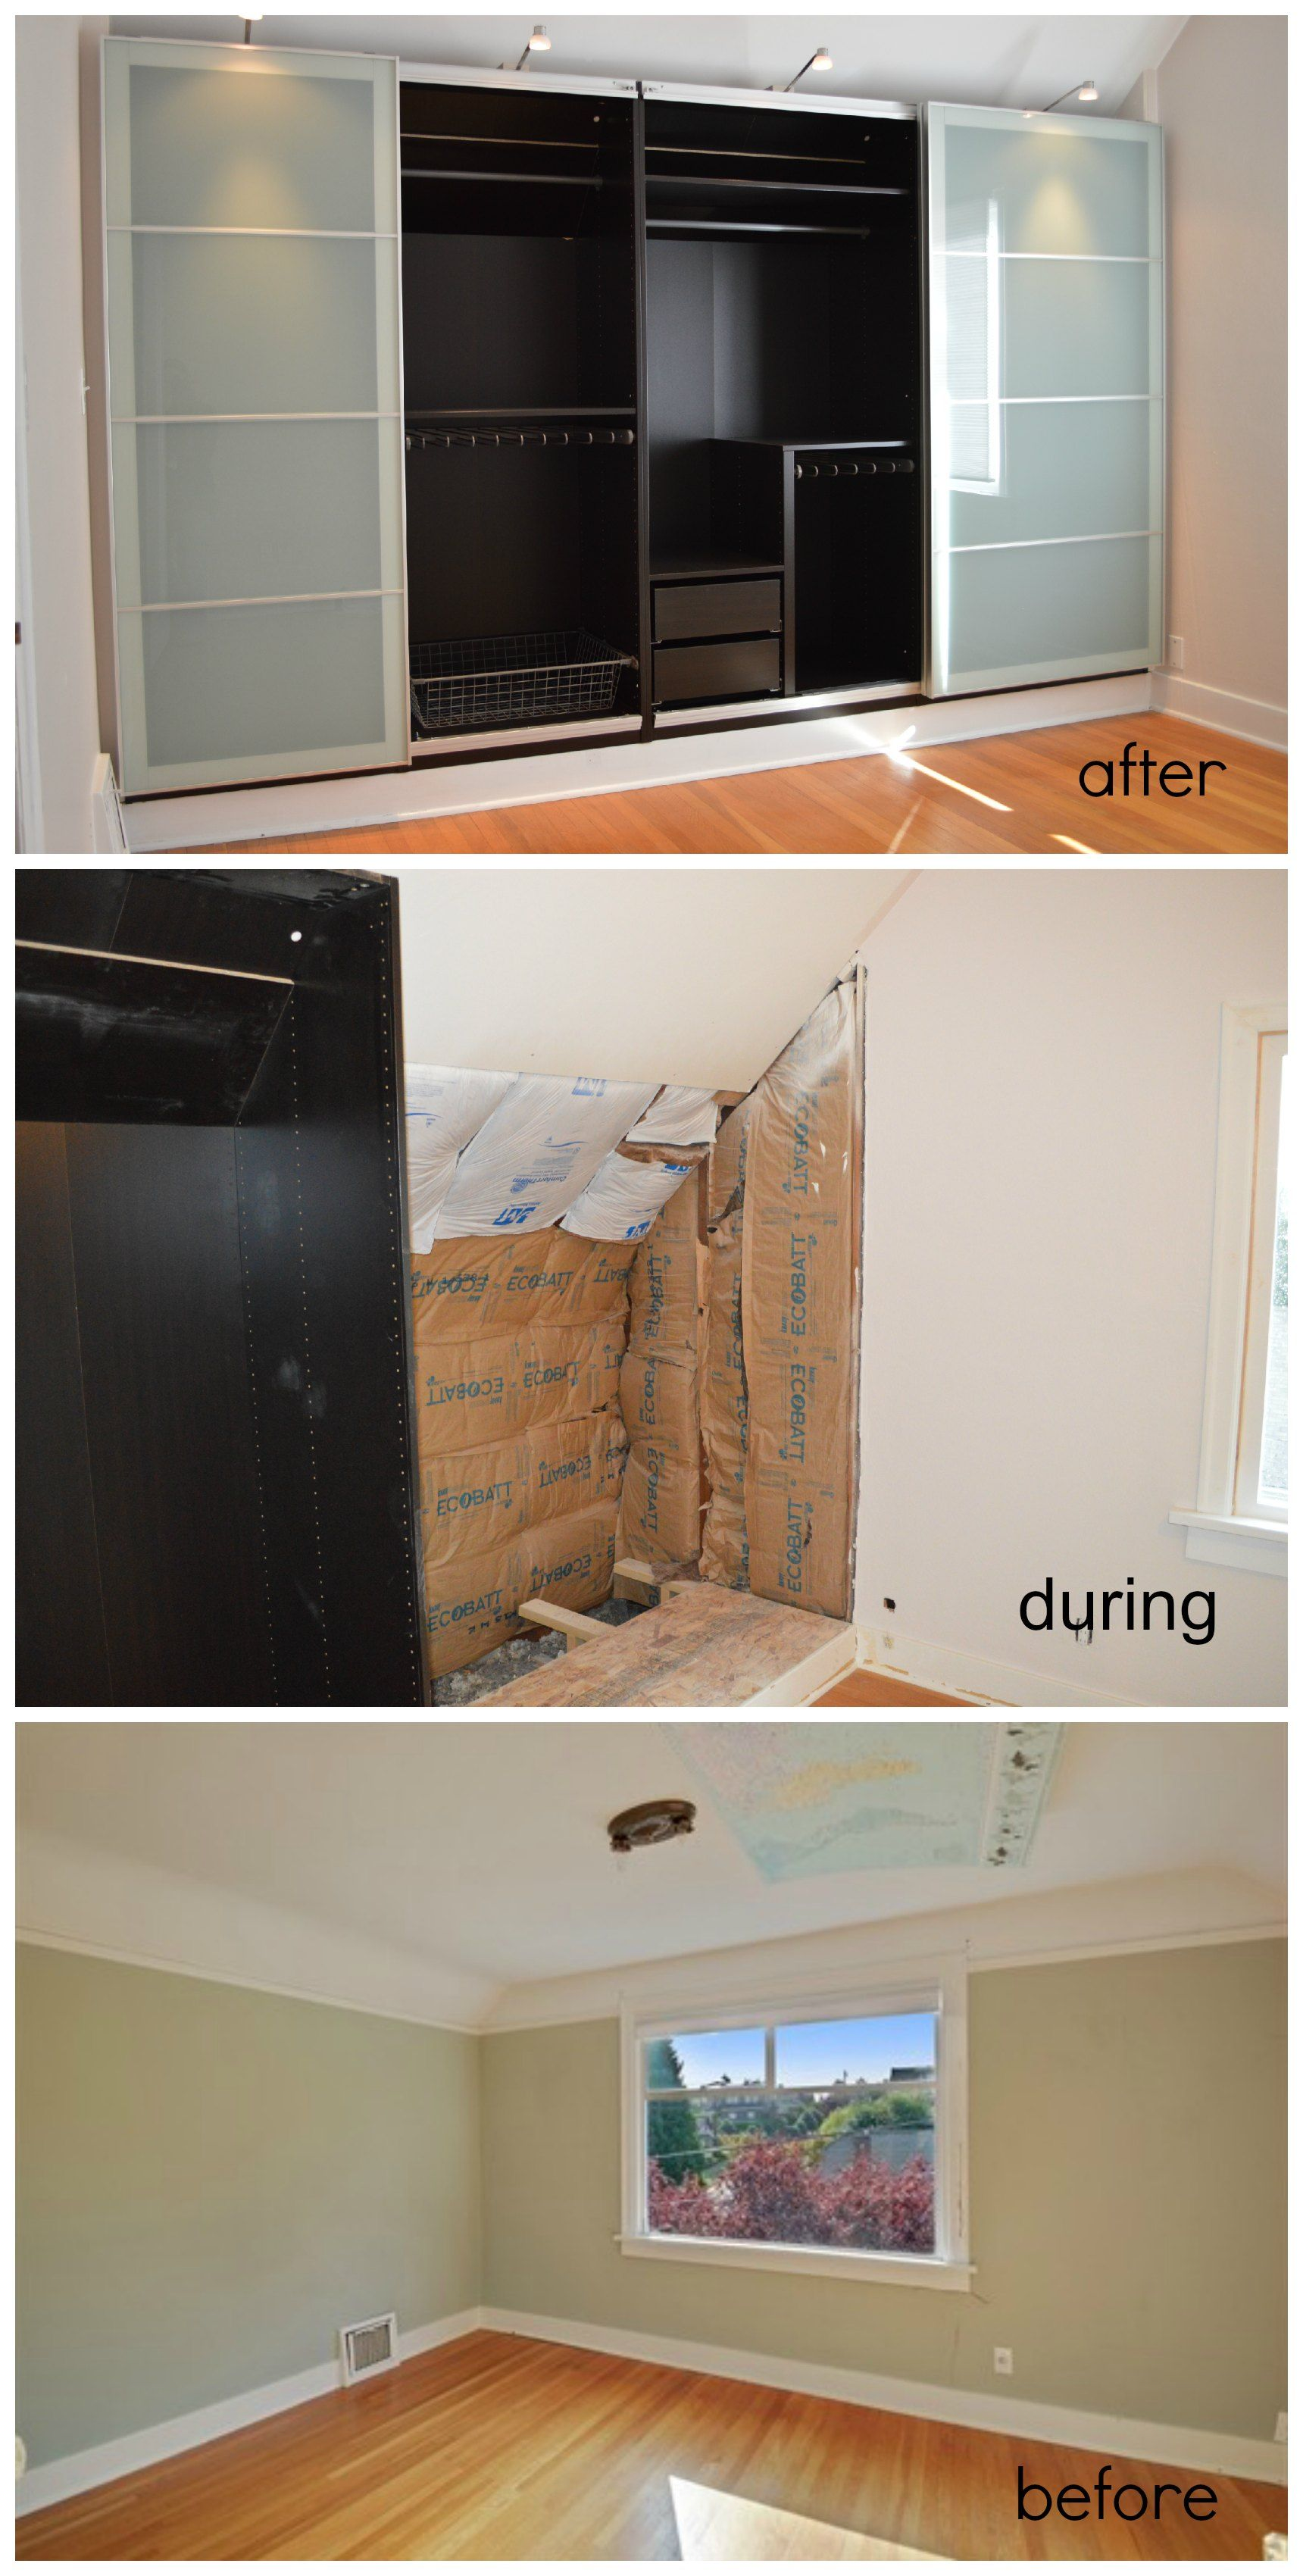 Built In Ikea Closet System In 1927 House. With Only A Tiny Closet In